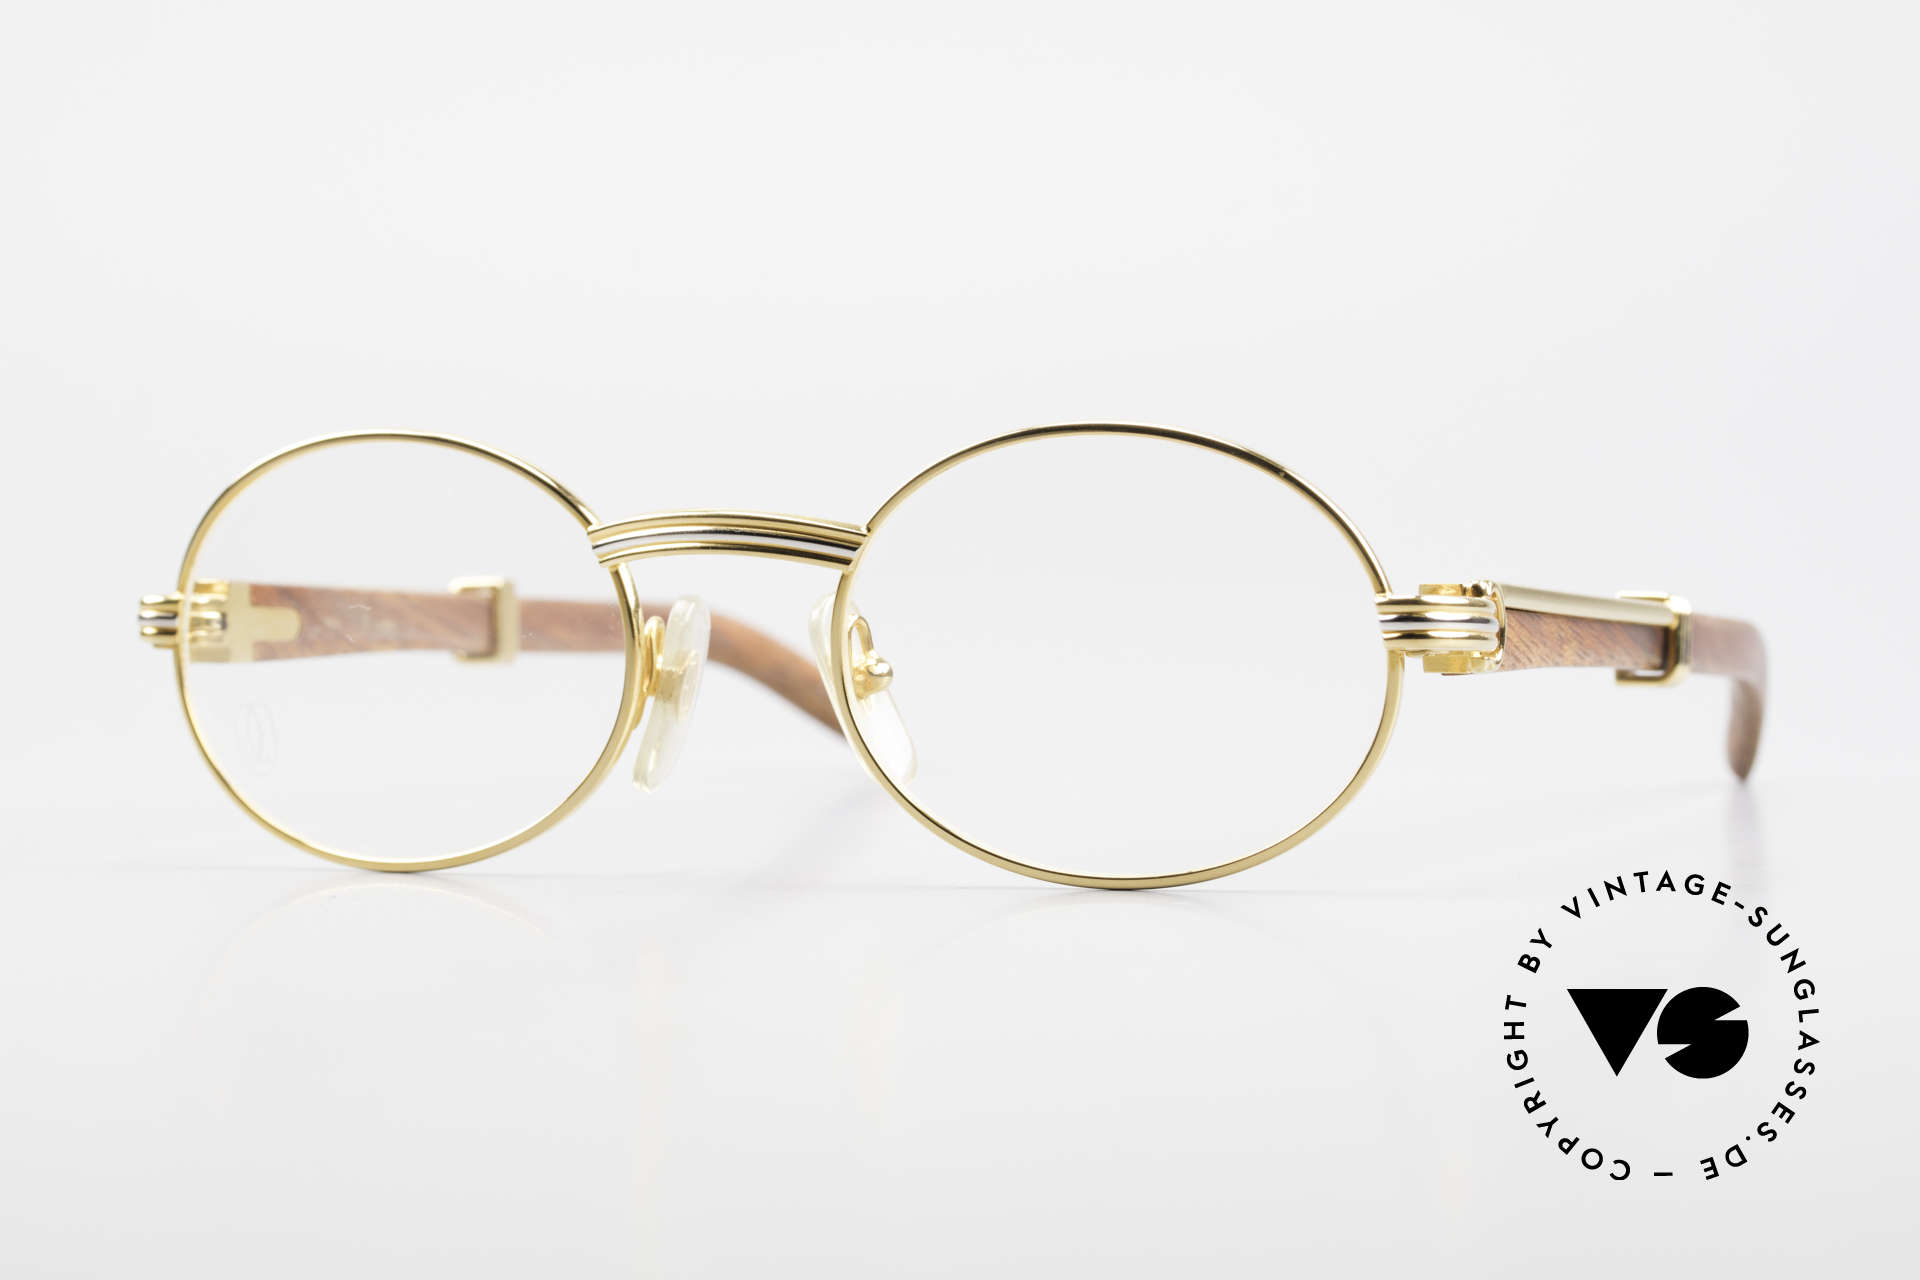 Cartier Giverny Oval Wood Glasses Gold Plated, precious oval CARTIER vintage sunglasses from 1990, Made for Men and Women